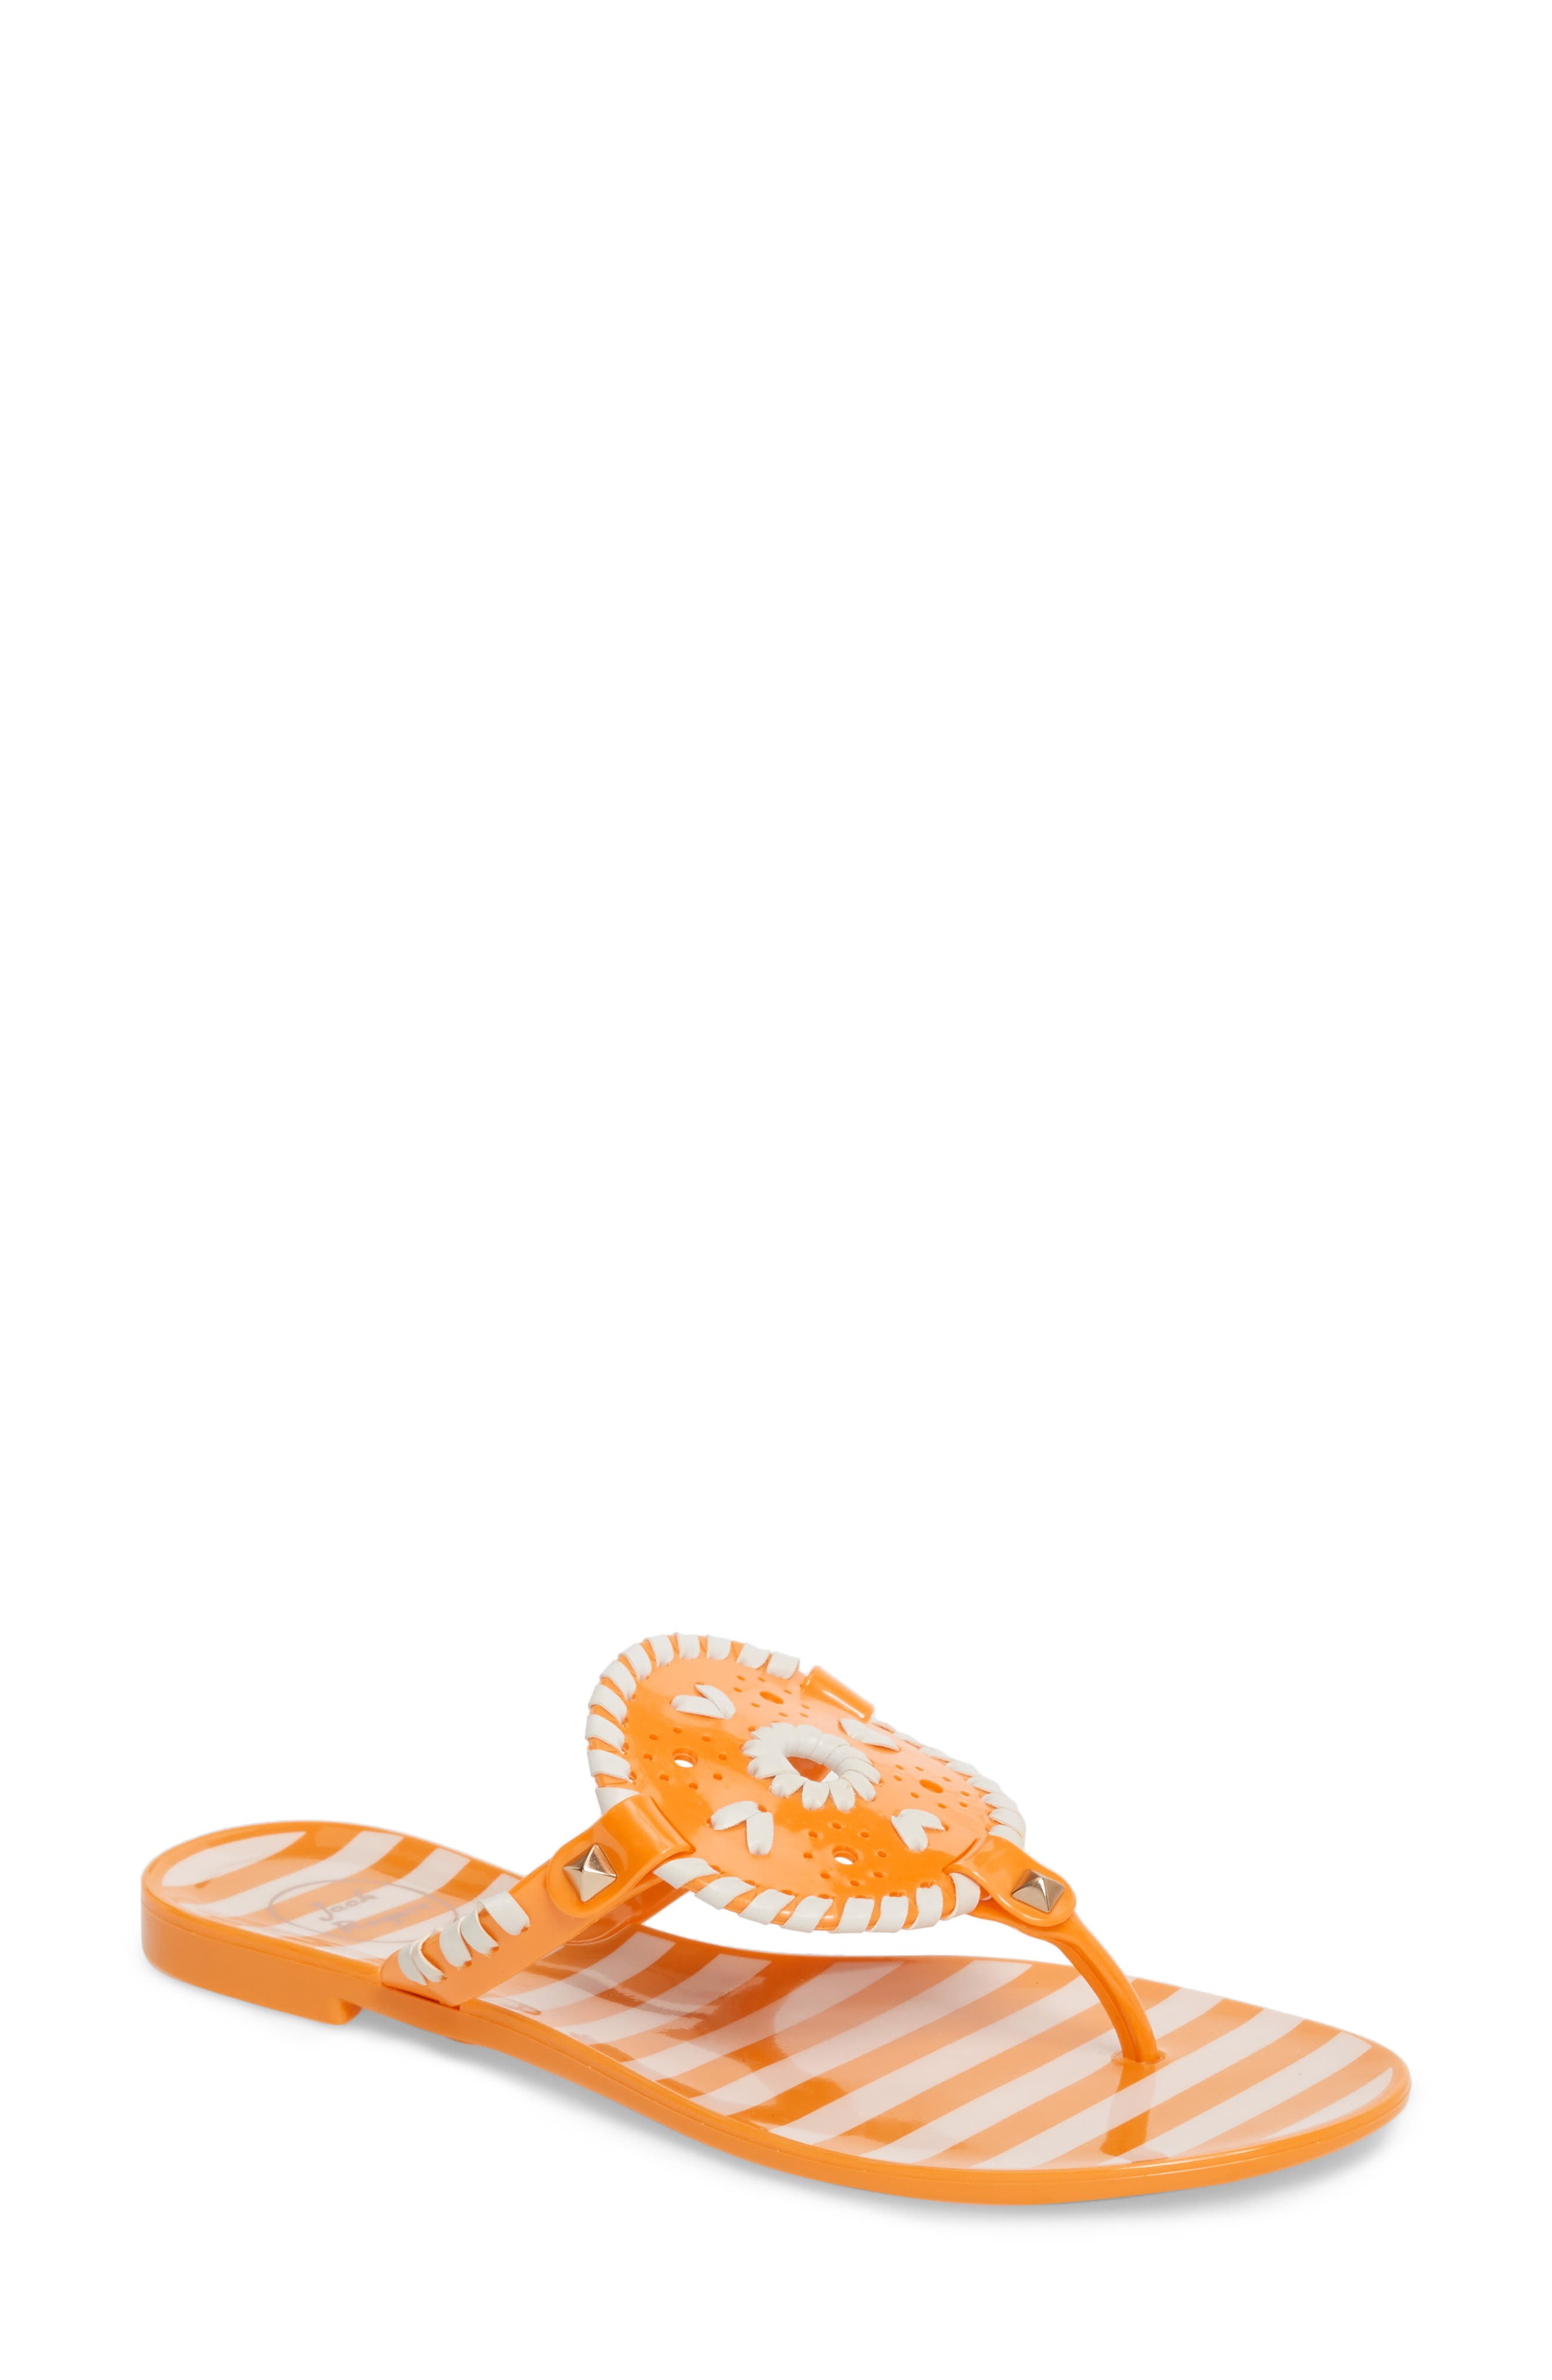 'Georgica' Jelly Flip Flop,                         Main,                         color, Tangerine/ White Fabric